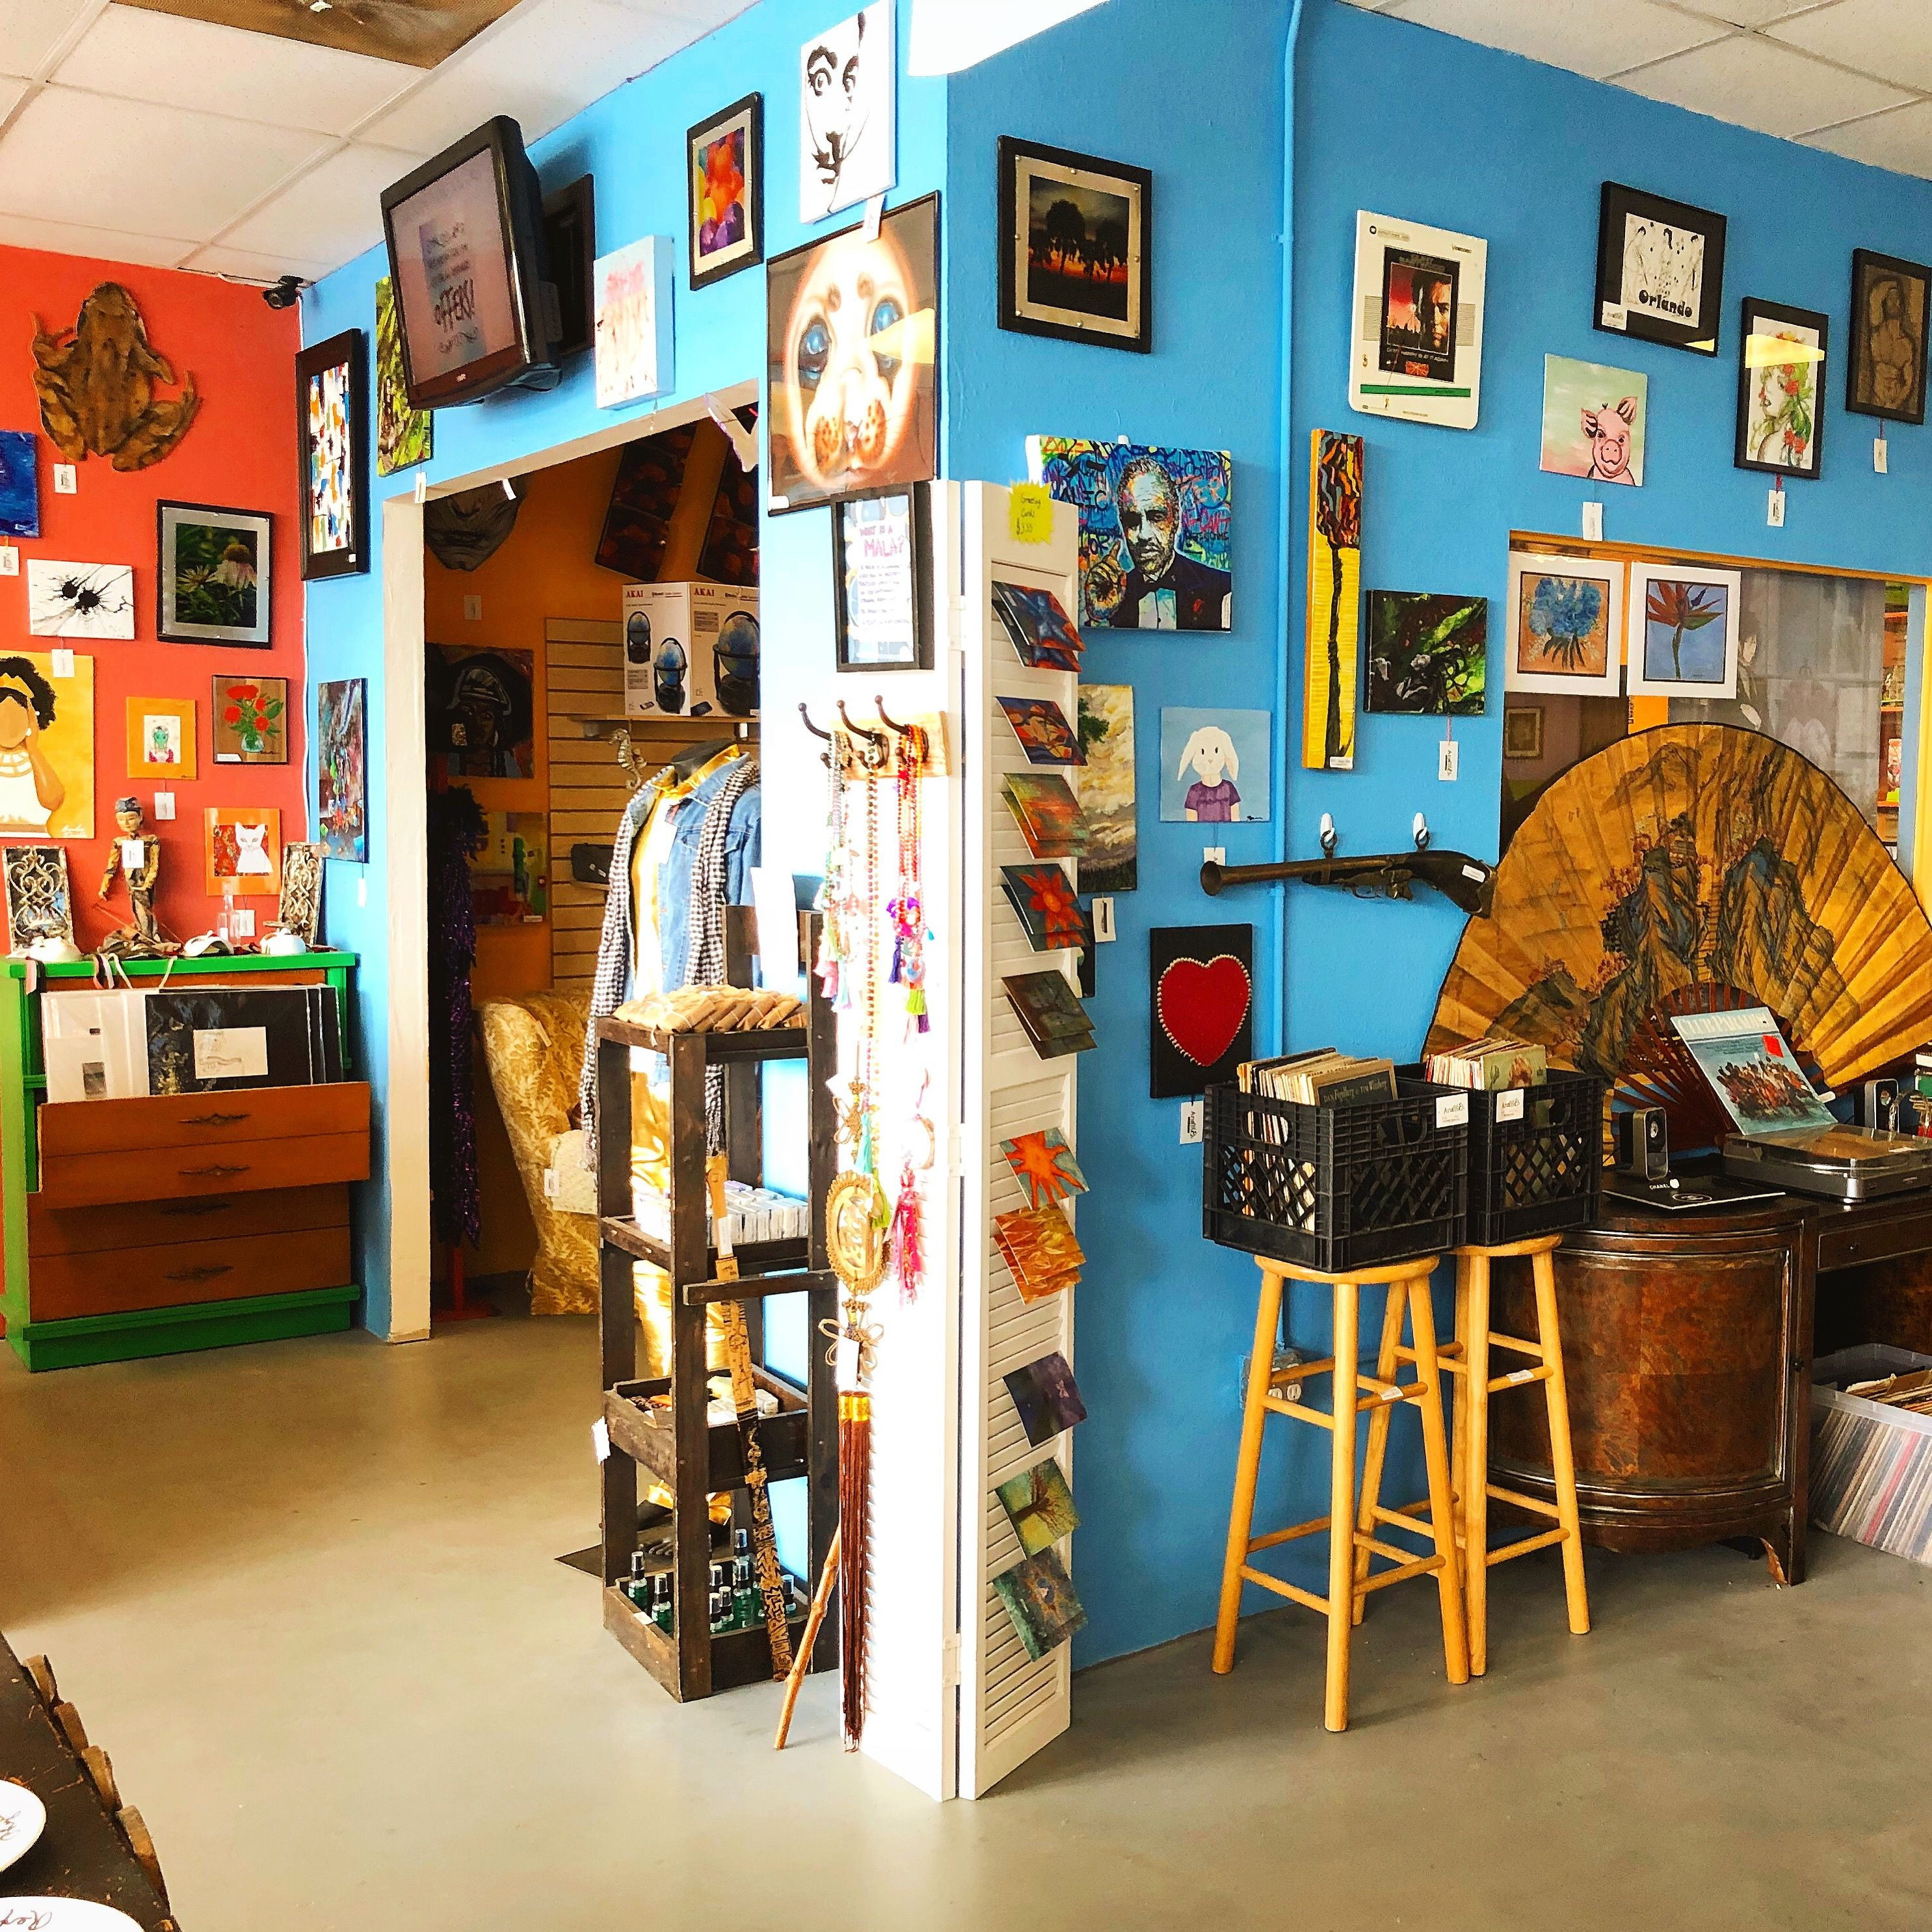 Best Thrift Stores in Orlando | Thrifting, Orlando, Best